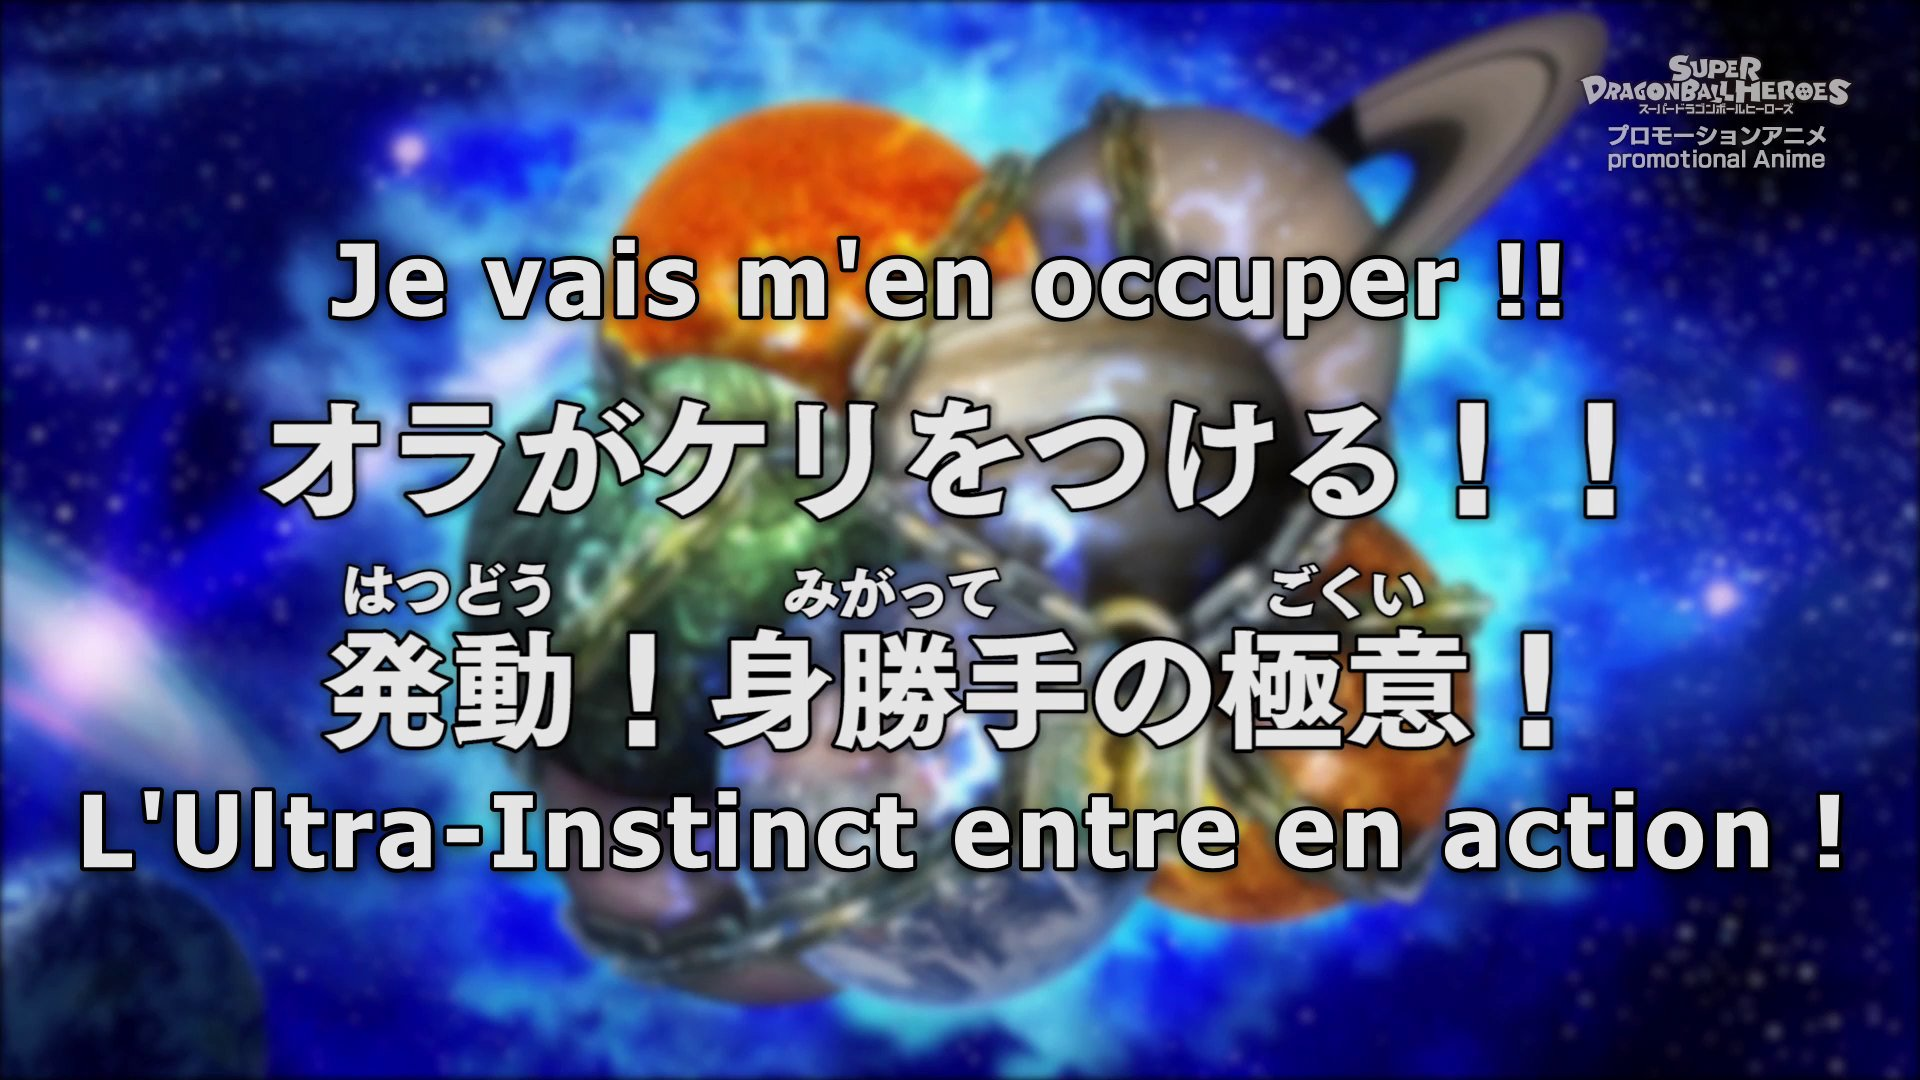 Fansub - Super Dragon Ball Heroes Episode 6 + Episode 5v2